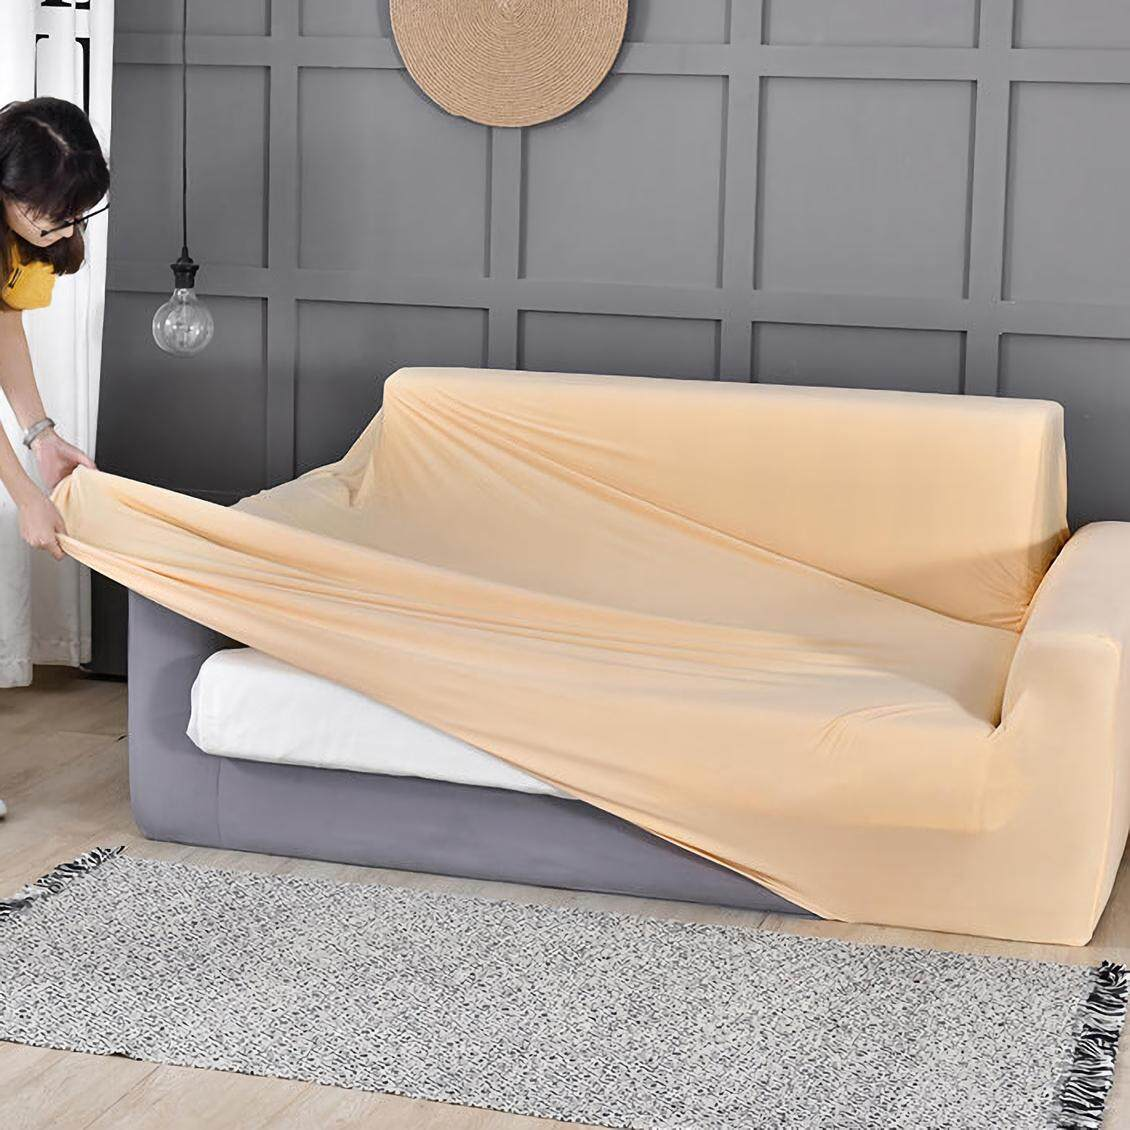 Sheleep Printed Stretch Sofa slipcover, 1-Piece Polyester Spandex Fabric Sofa Cover for Living Room Couch Cover L shape Armchair Cover 1/2/3/4 seater